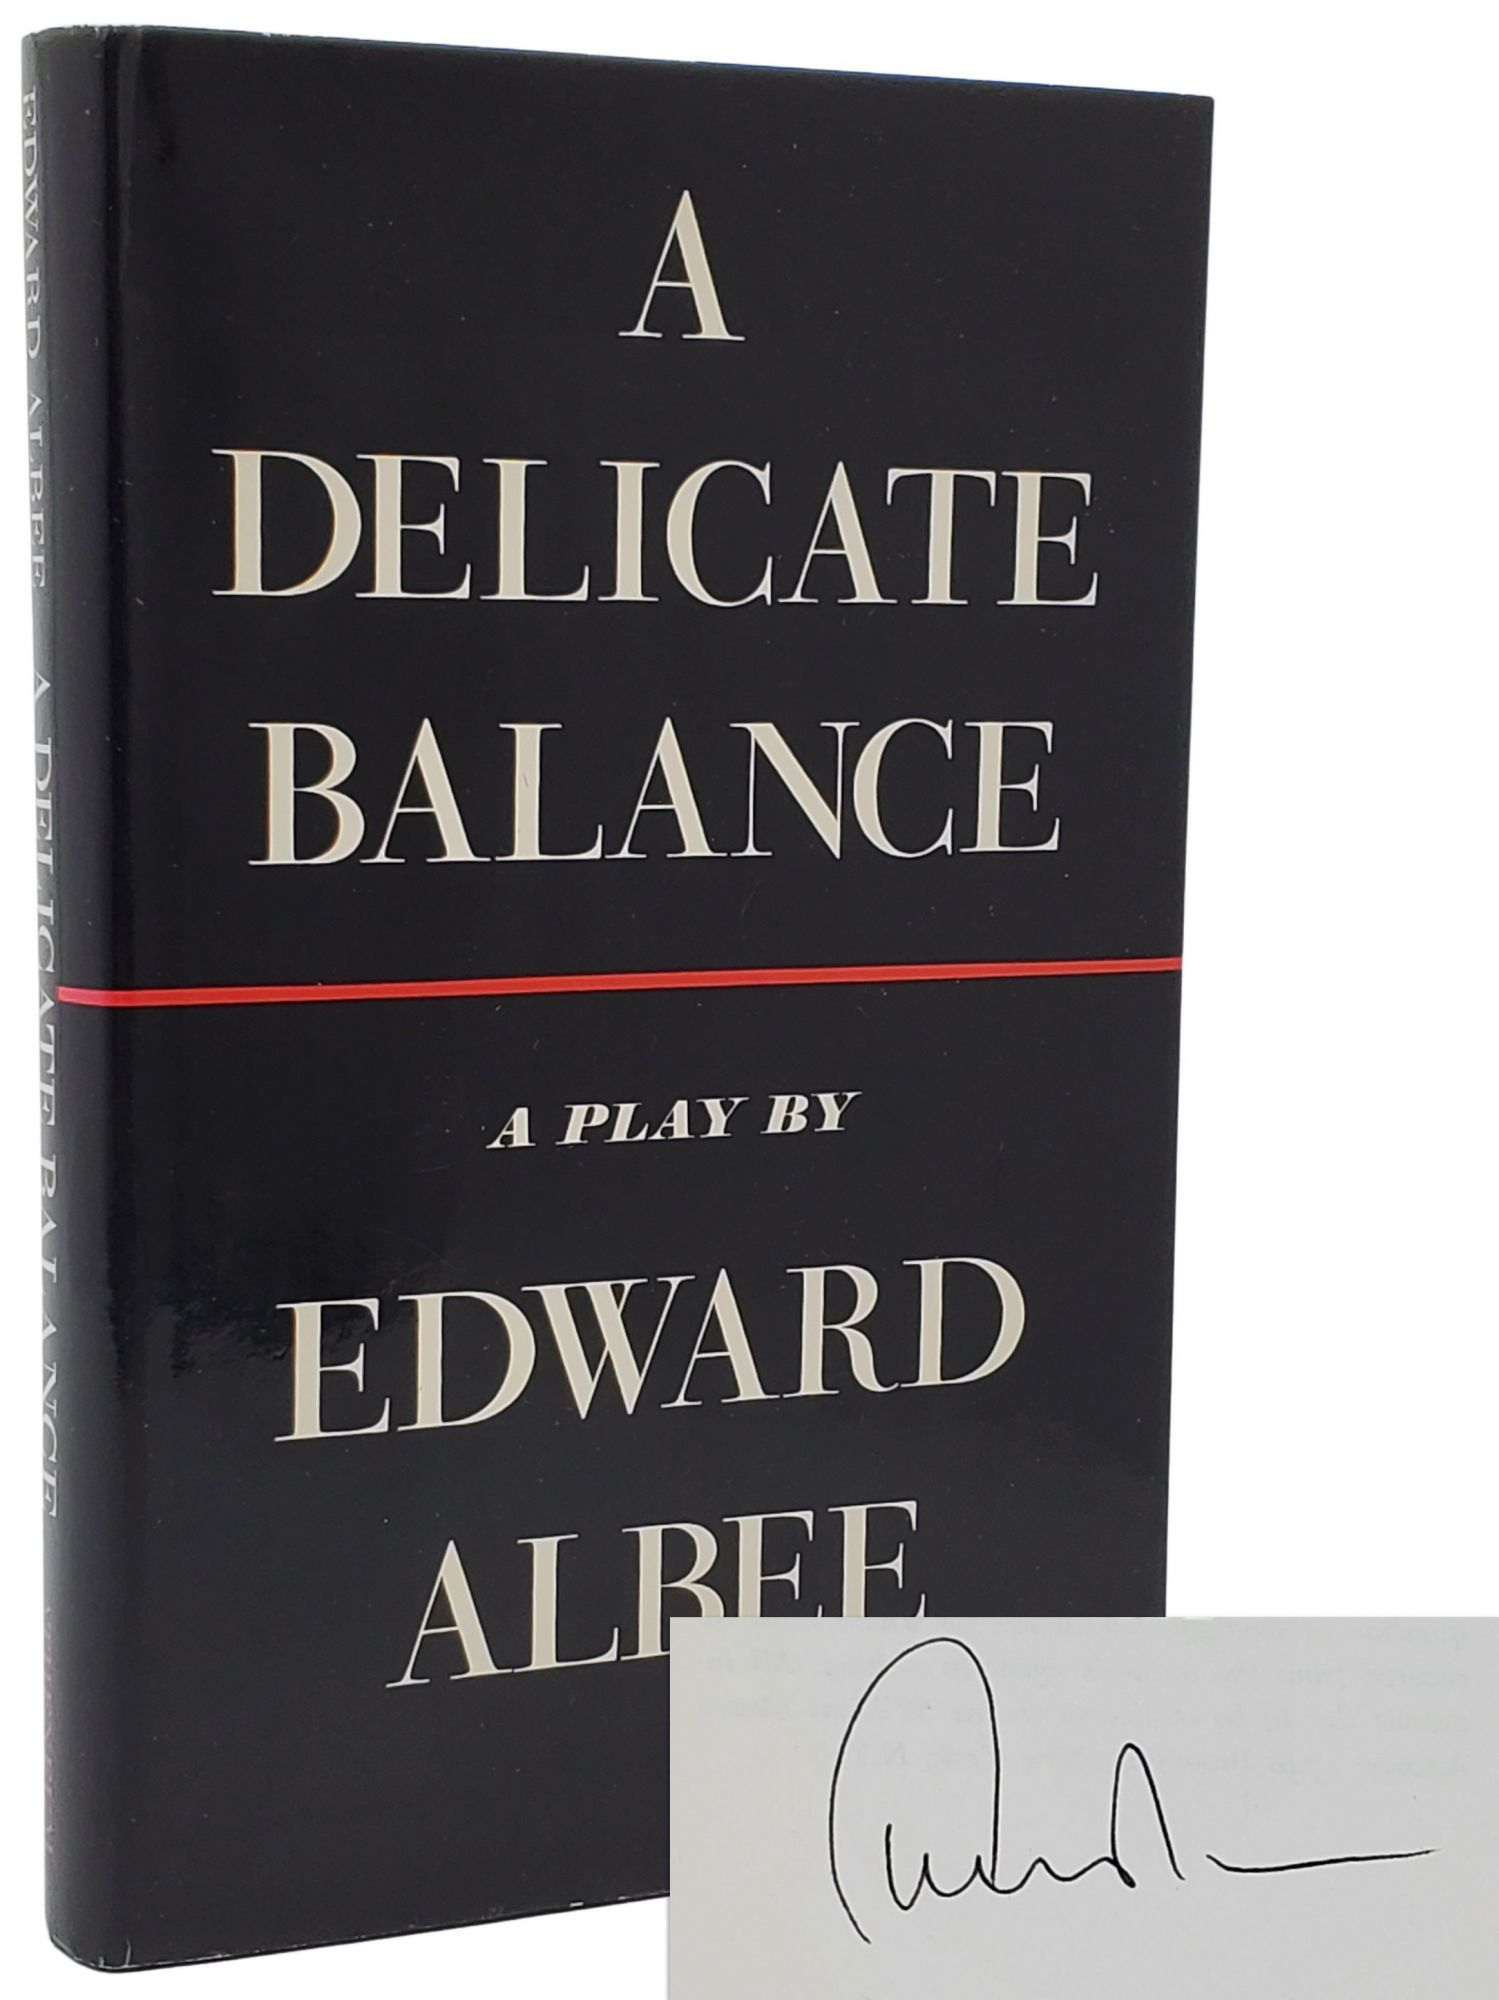 A DELICATE BALANCE [SIGNED]. Edward Albee.